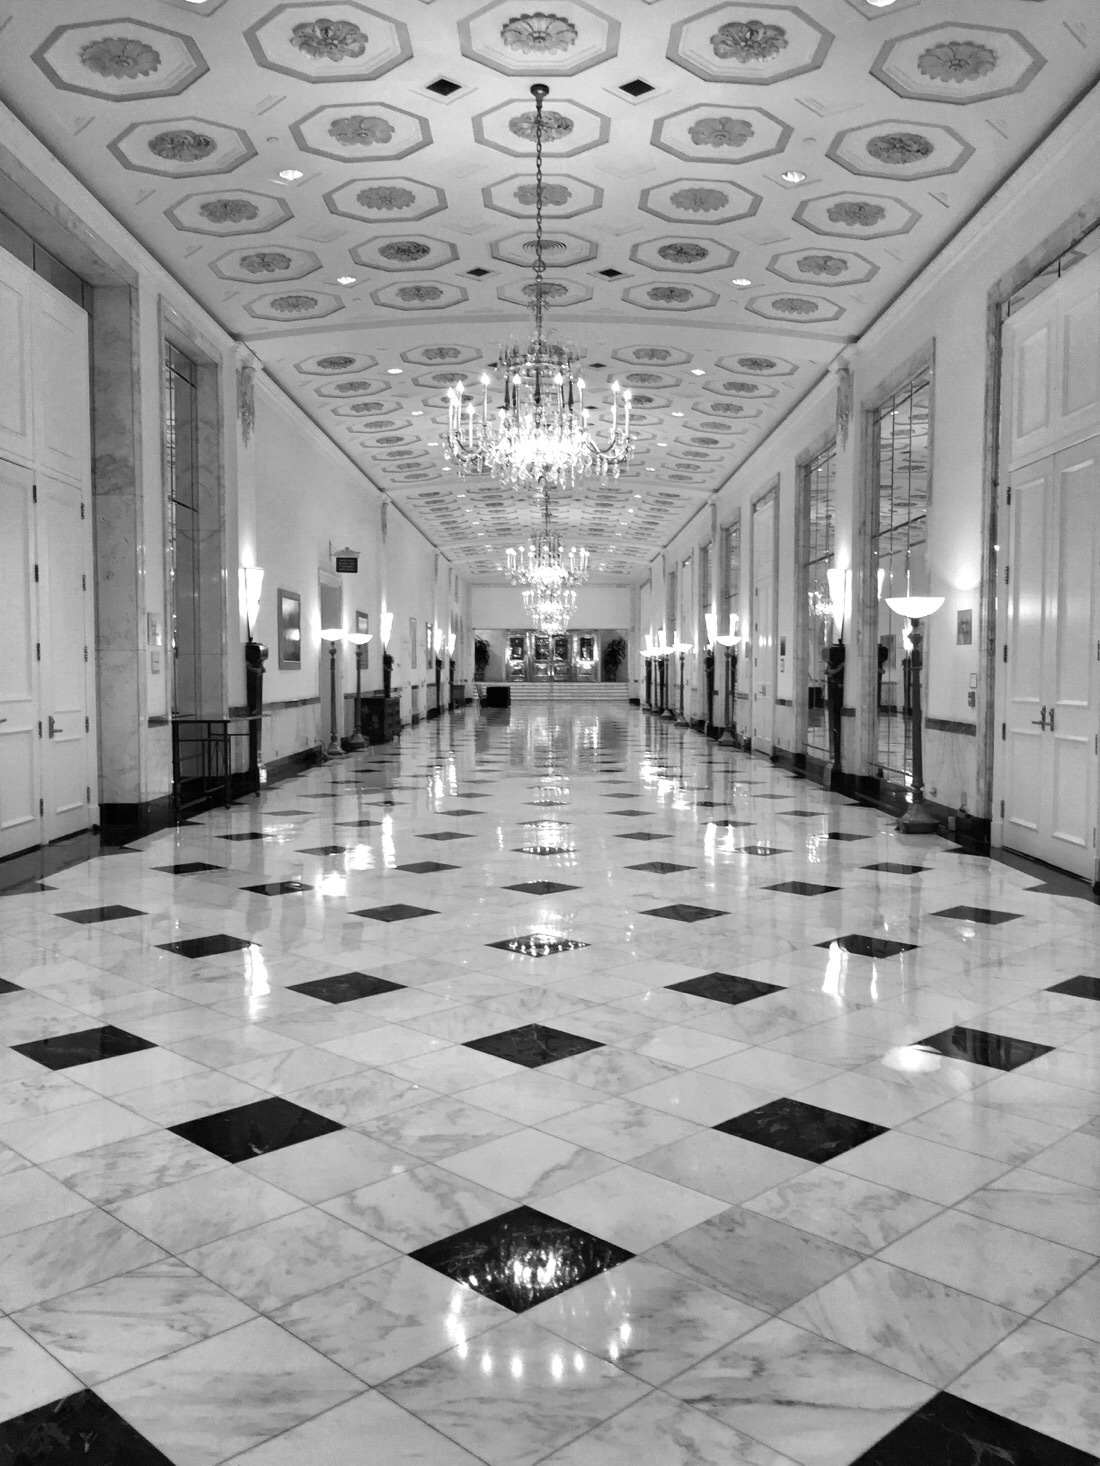 hallway in the mayflower hotel in washington dc